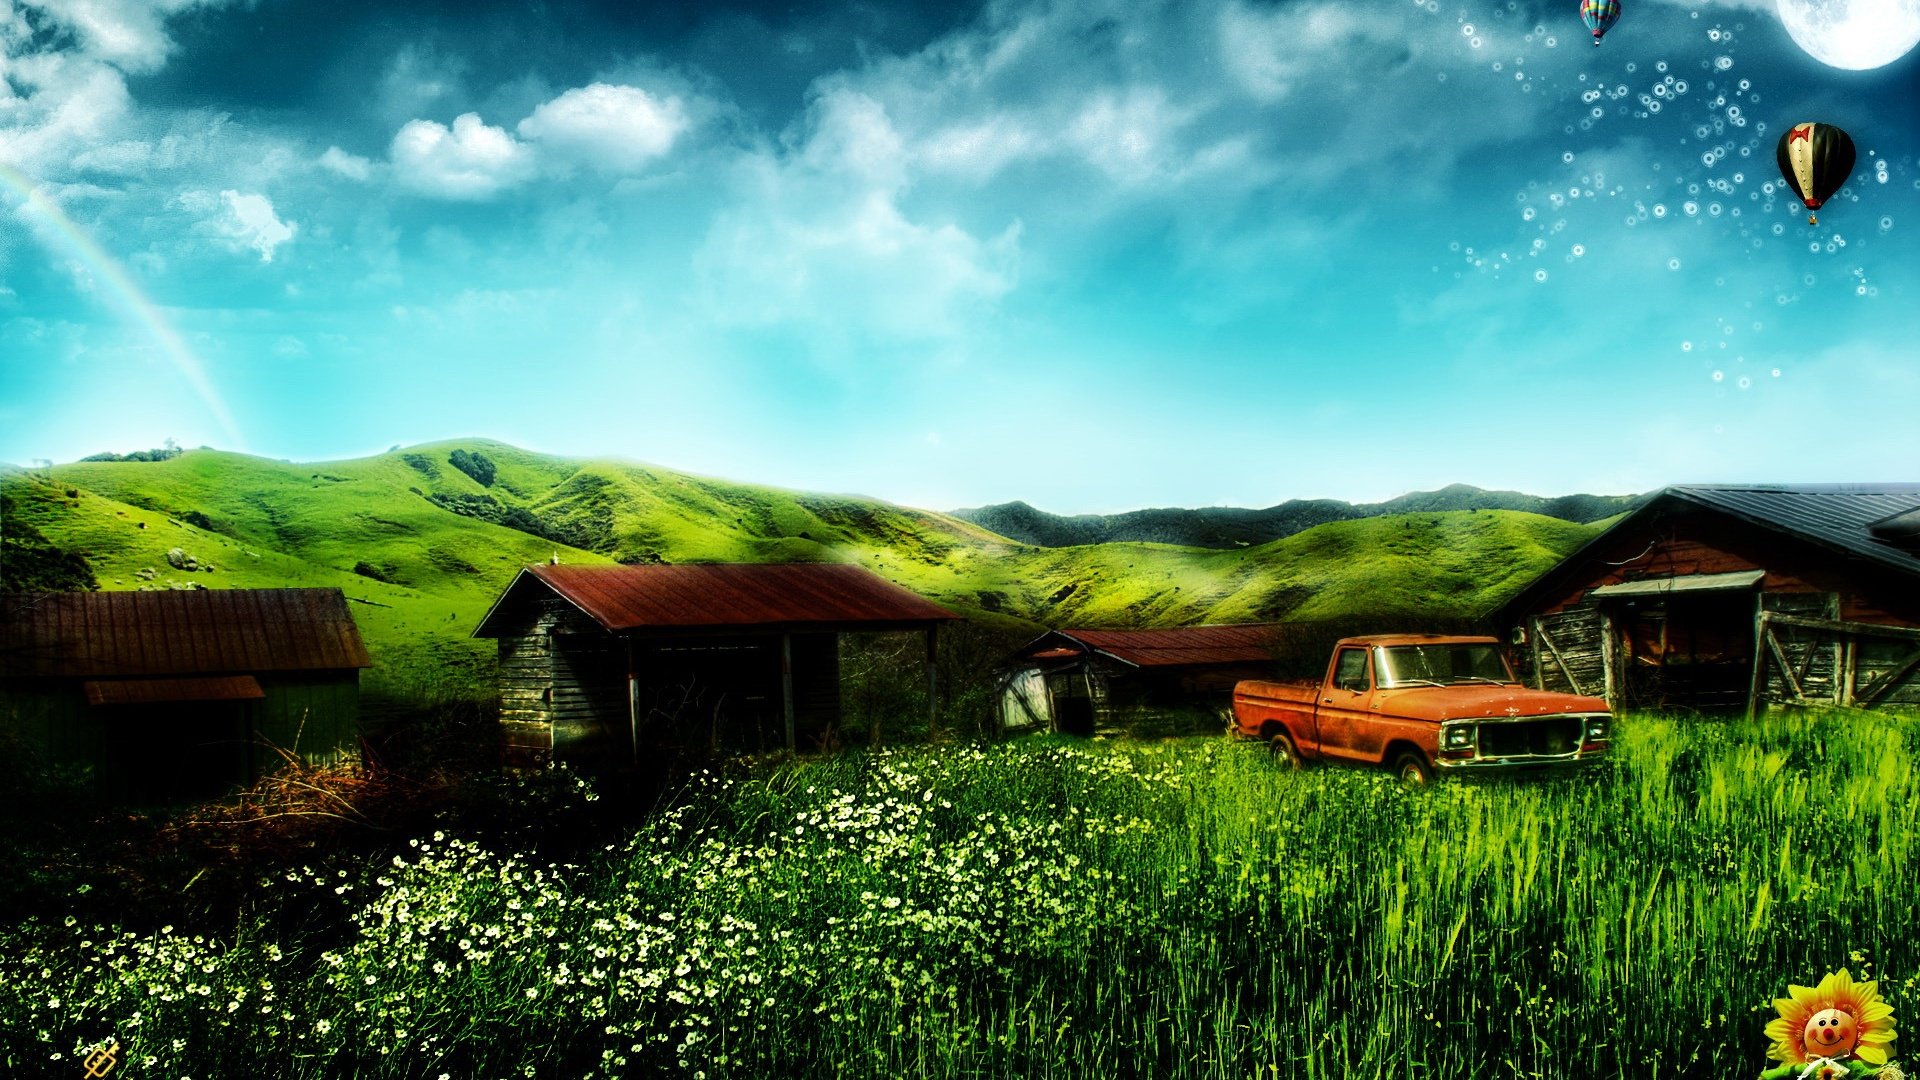 house and truck Wallpaper | 1920x1080 Full HD resolution wallpaper ...: best-wallpaper.net/Dream-home-house-and-truck_1920x1080.html